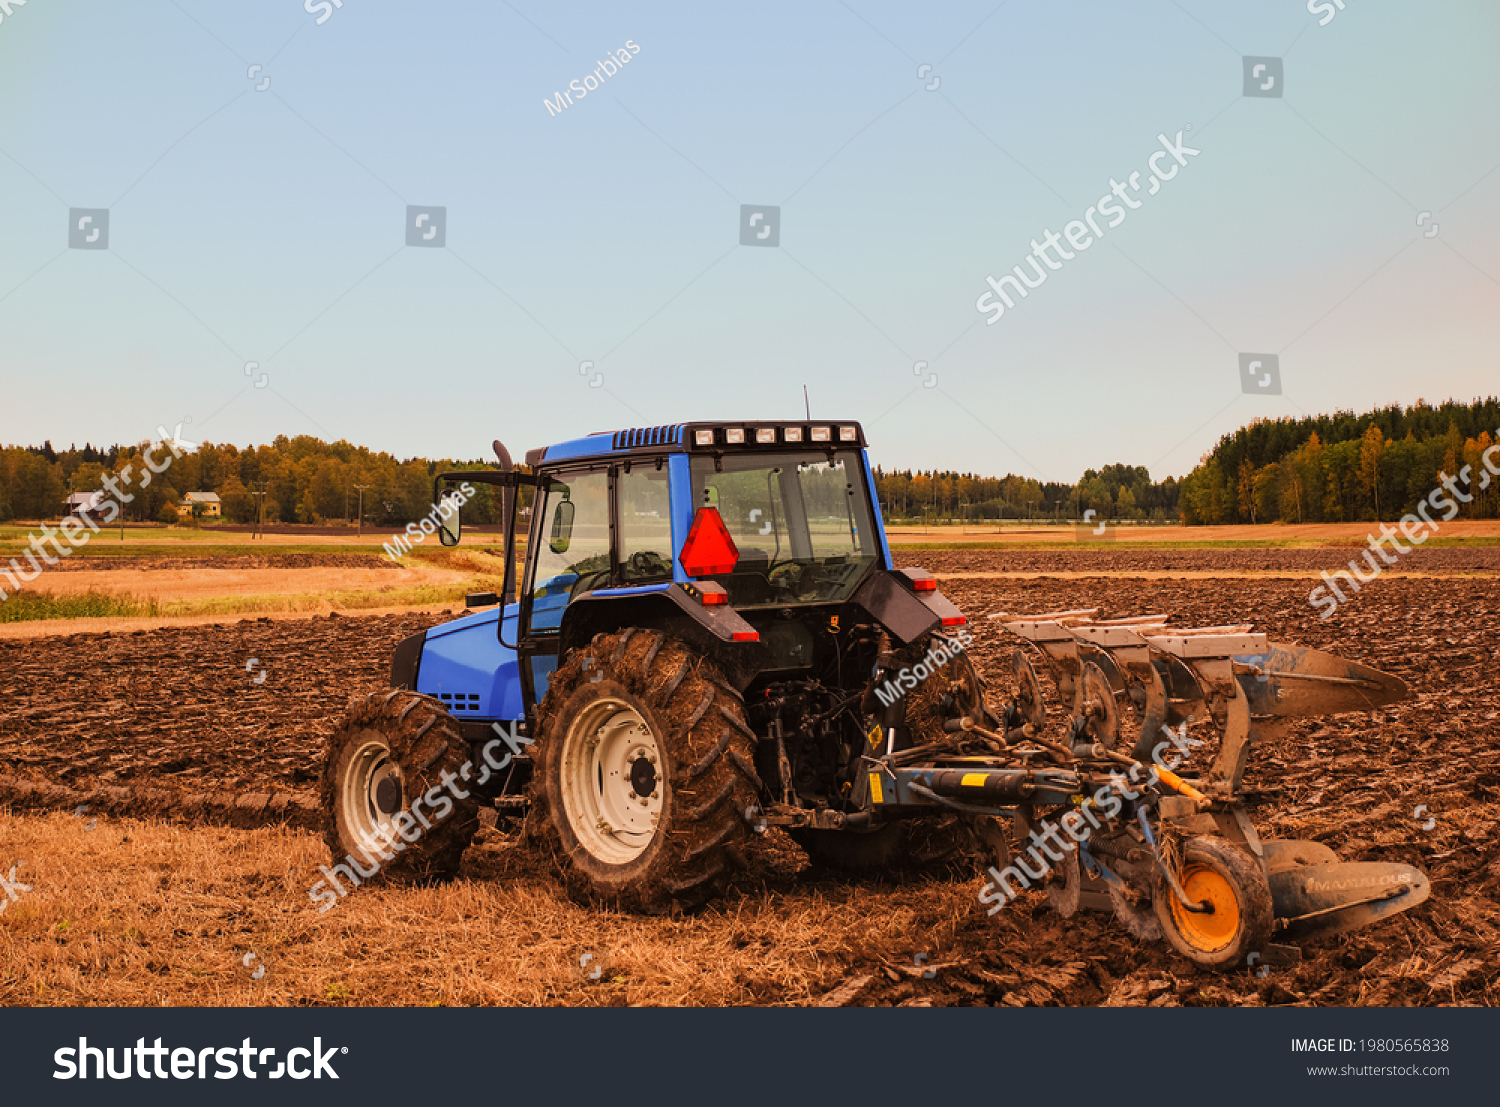 stock-photo-tractor-plowing-field-on-a-c